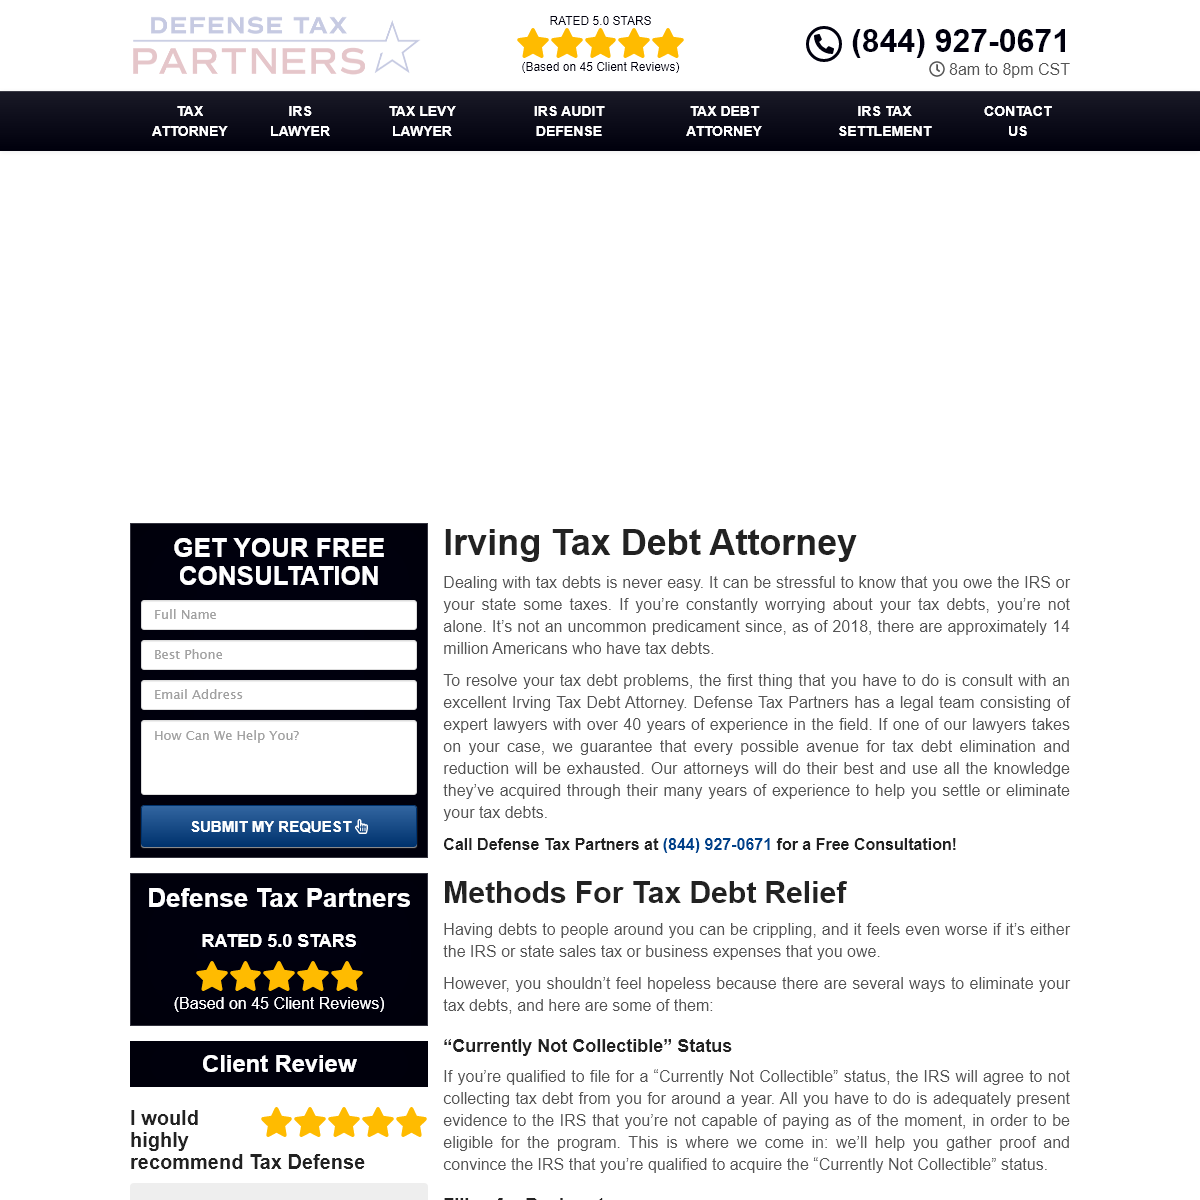 Tax Debt Attorney Irving, TX - Experienced Local Tax Debt Lawyer Near Me